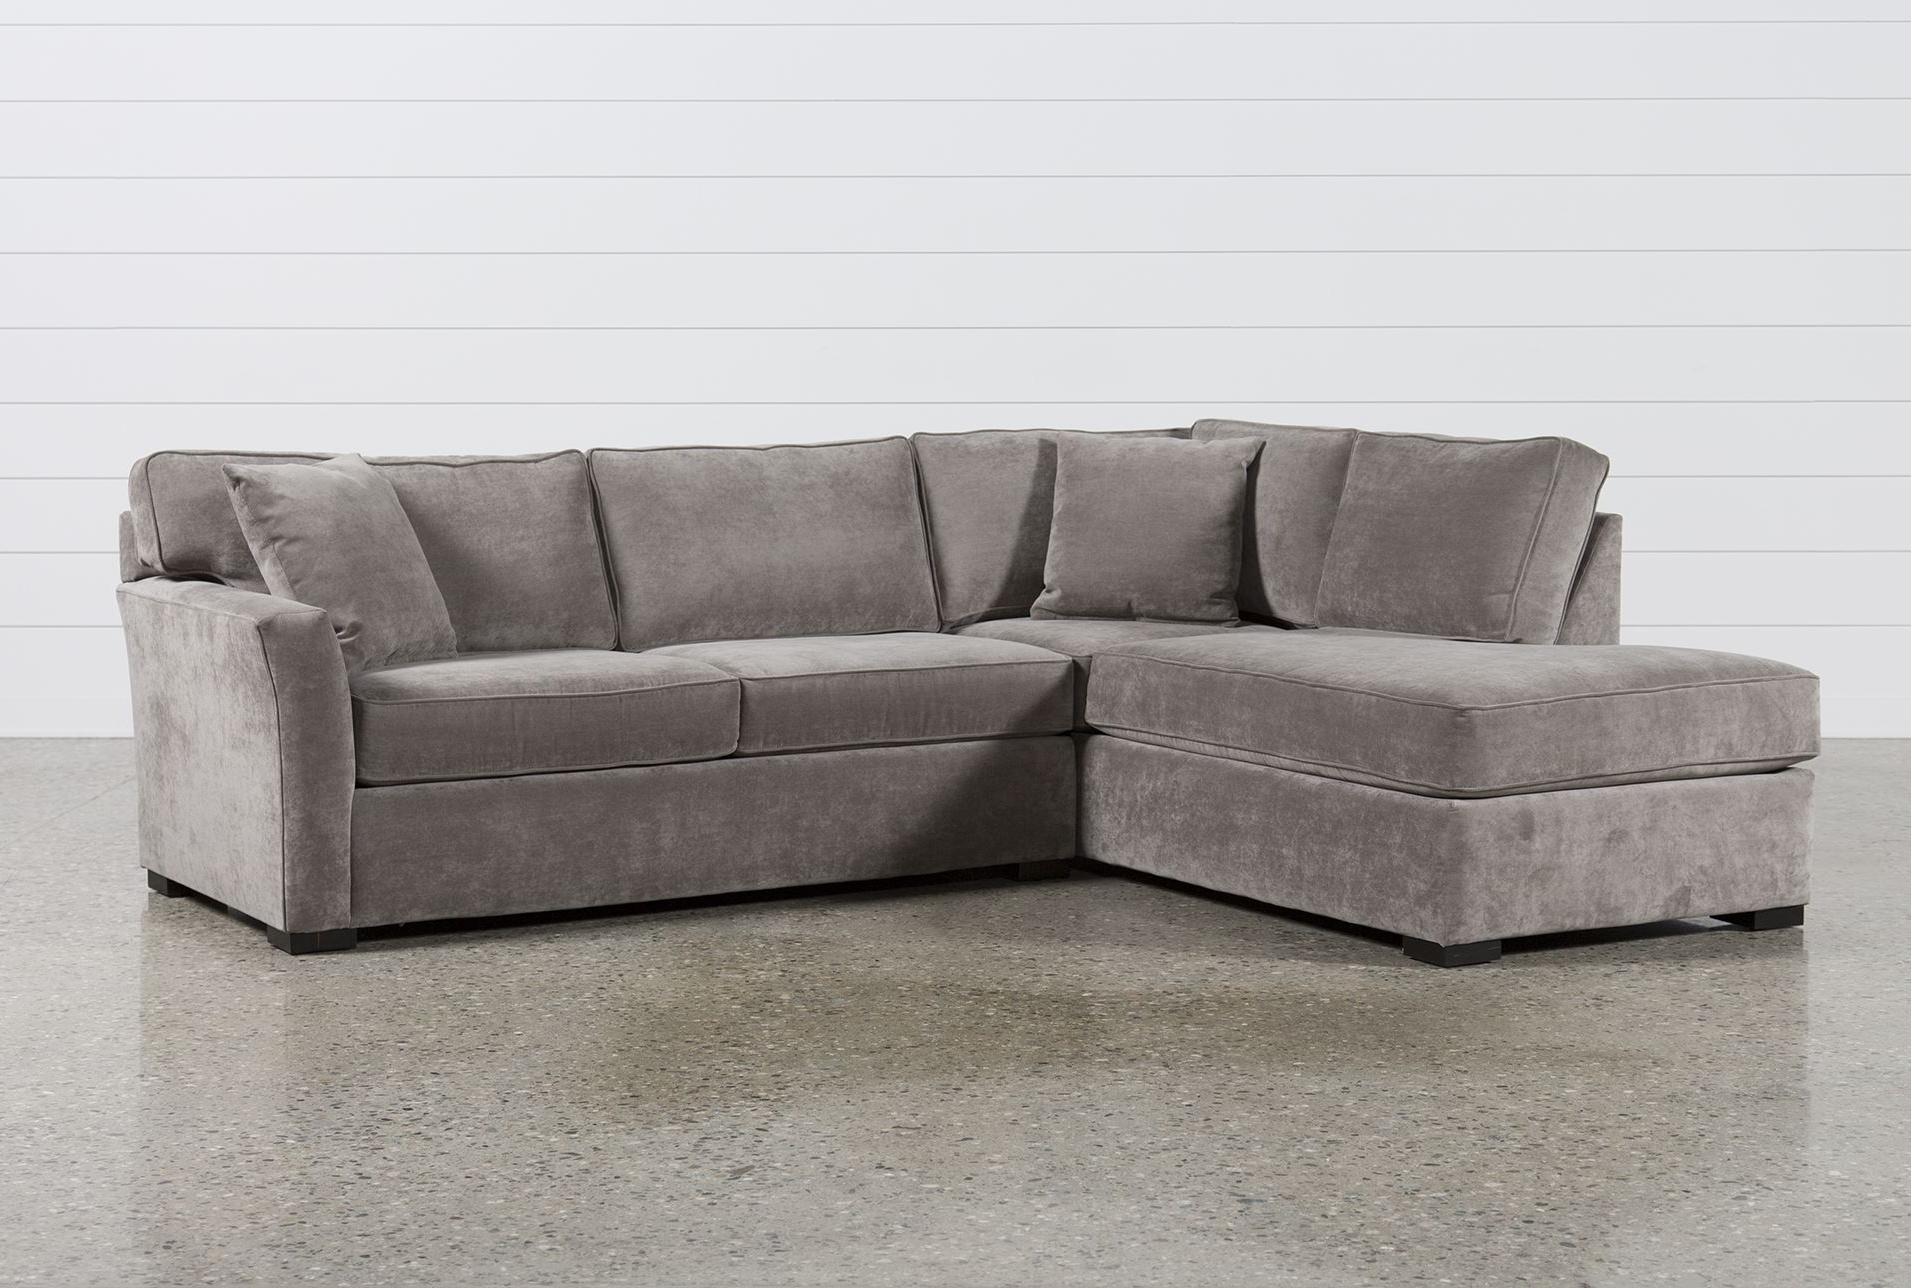 Well Known Living Spaces Sectional Sofas Regarding Aspen 2 Piece Sleeper Sectional W/laf Chaise (View 7 of 20)